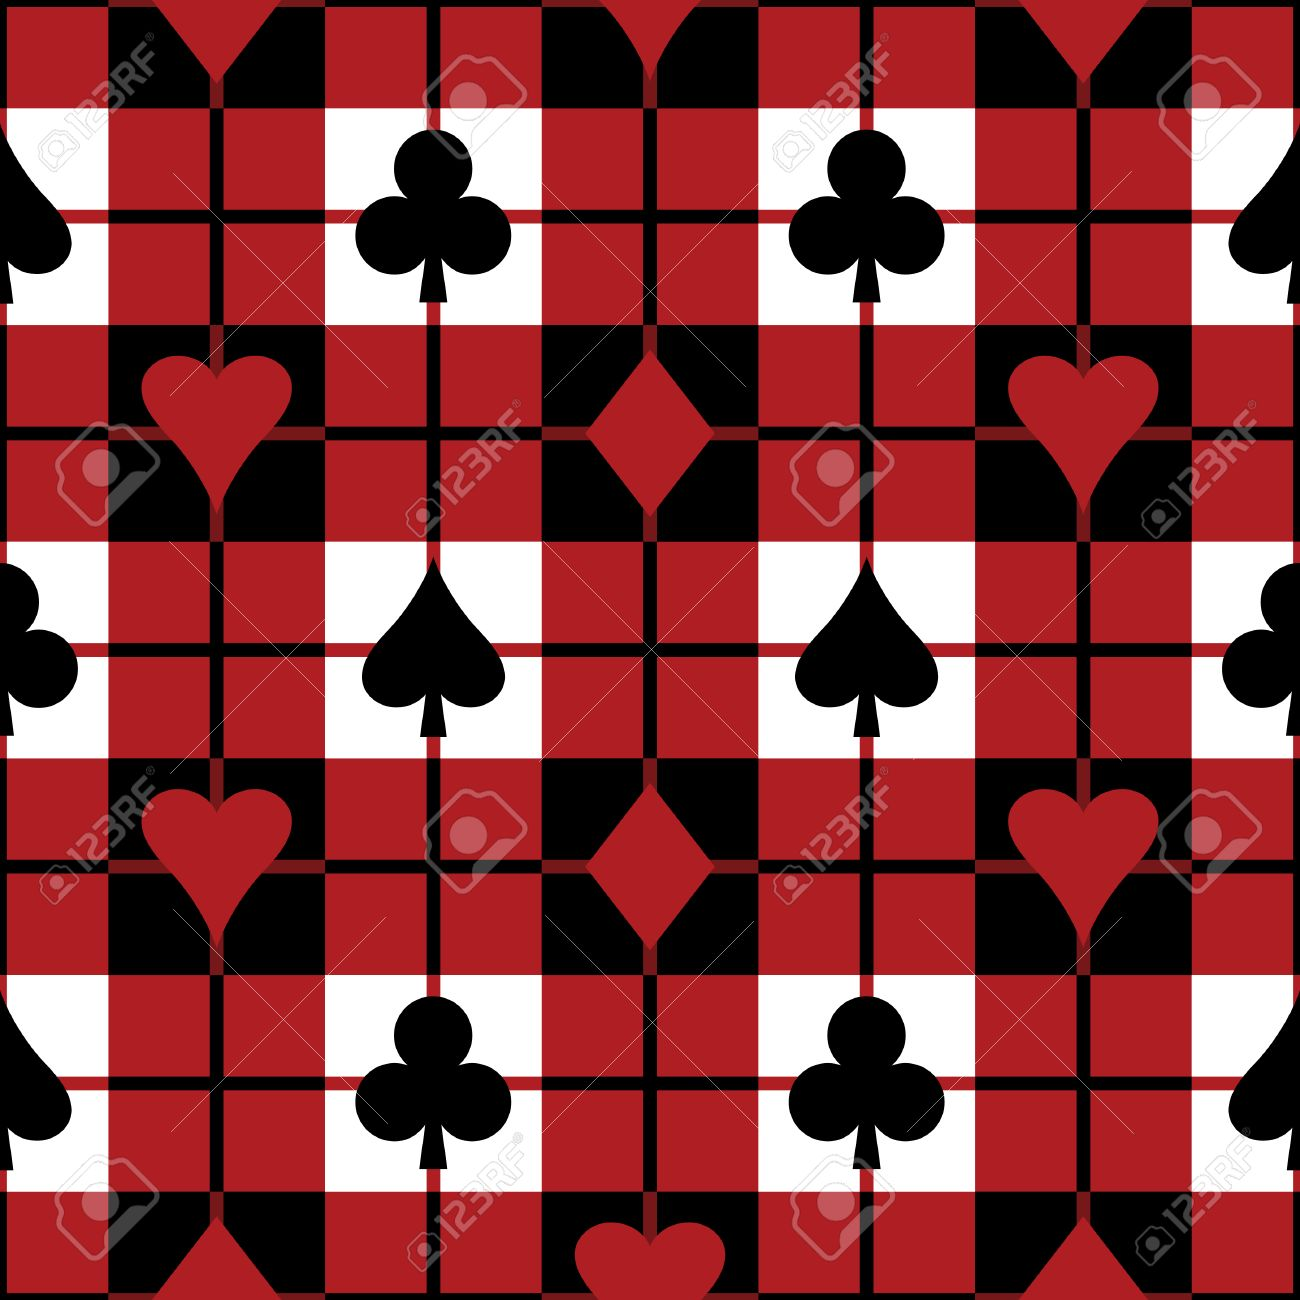 Seamless plaid pattern with the four playing card suits. Repeats 12 inches. Stock Vector - 5170032